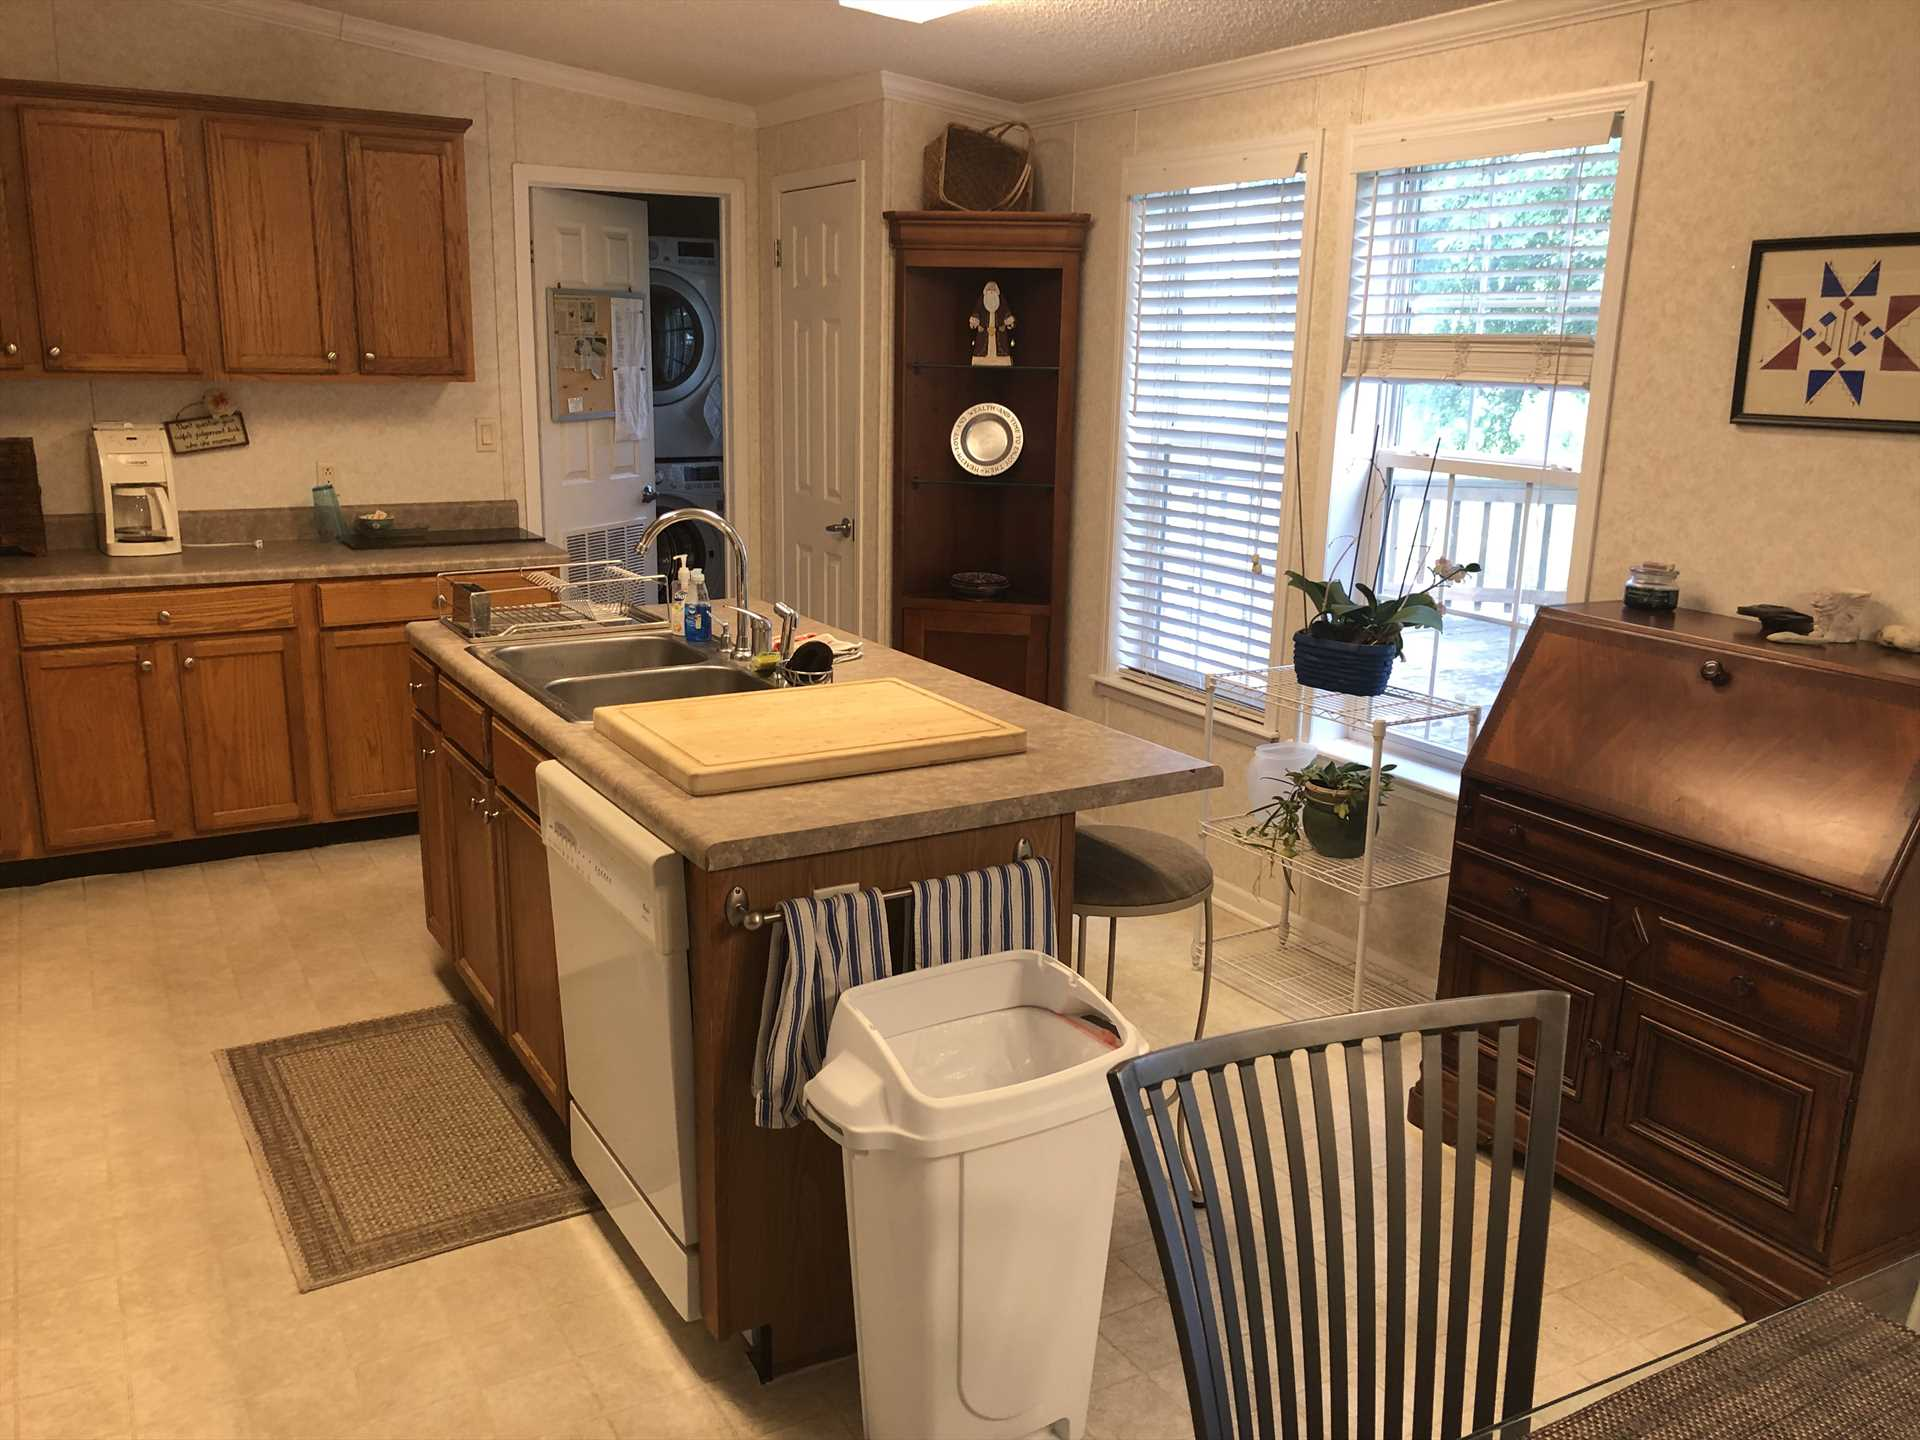 Beyond the fully-appointed kitchen, you'll see a new washer and dryer combo installed for your convenience!